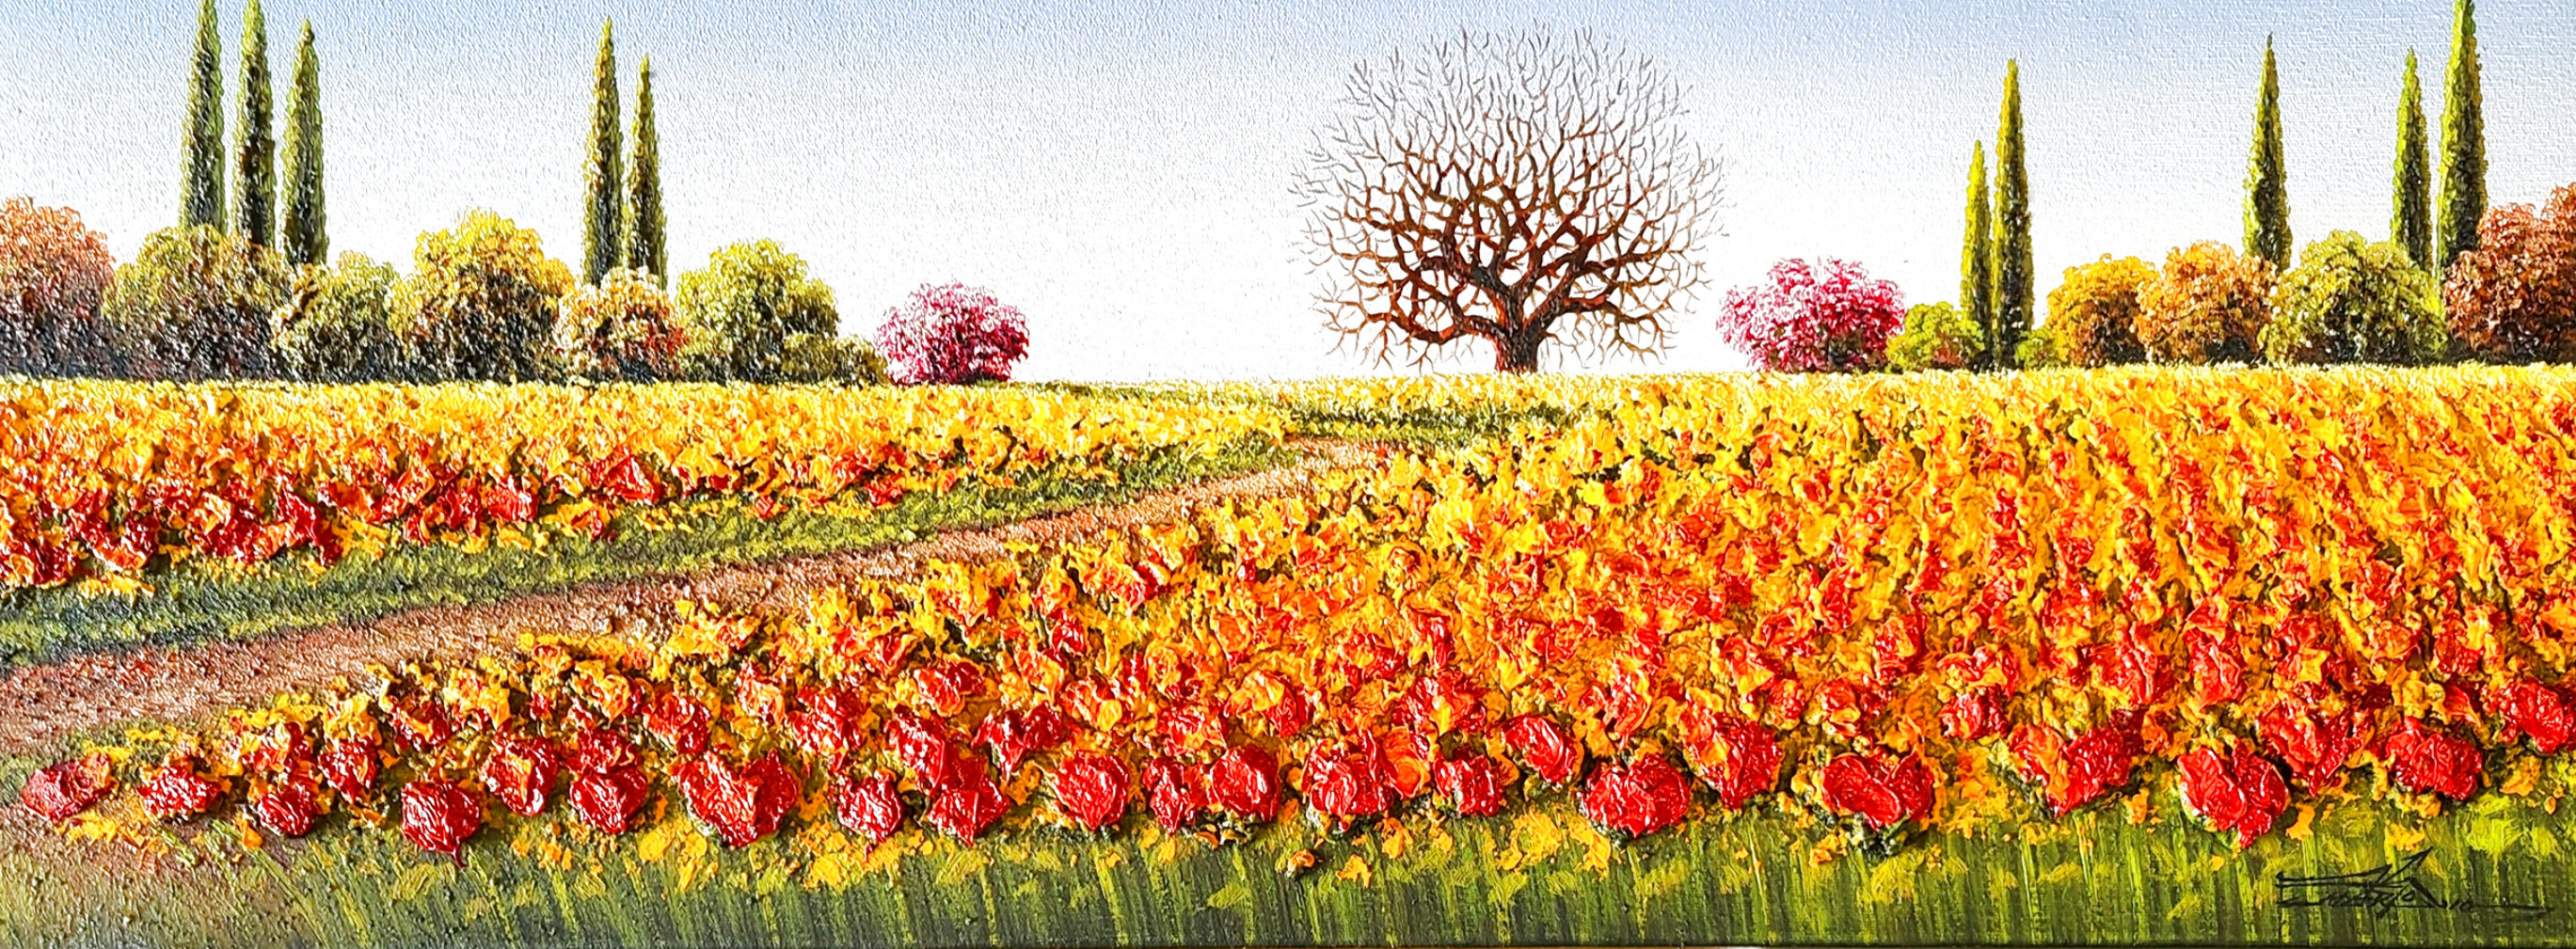 Untitled (Field of Flowers) 2010  12x36 Original Painting by Mario Jung